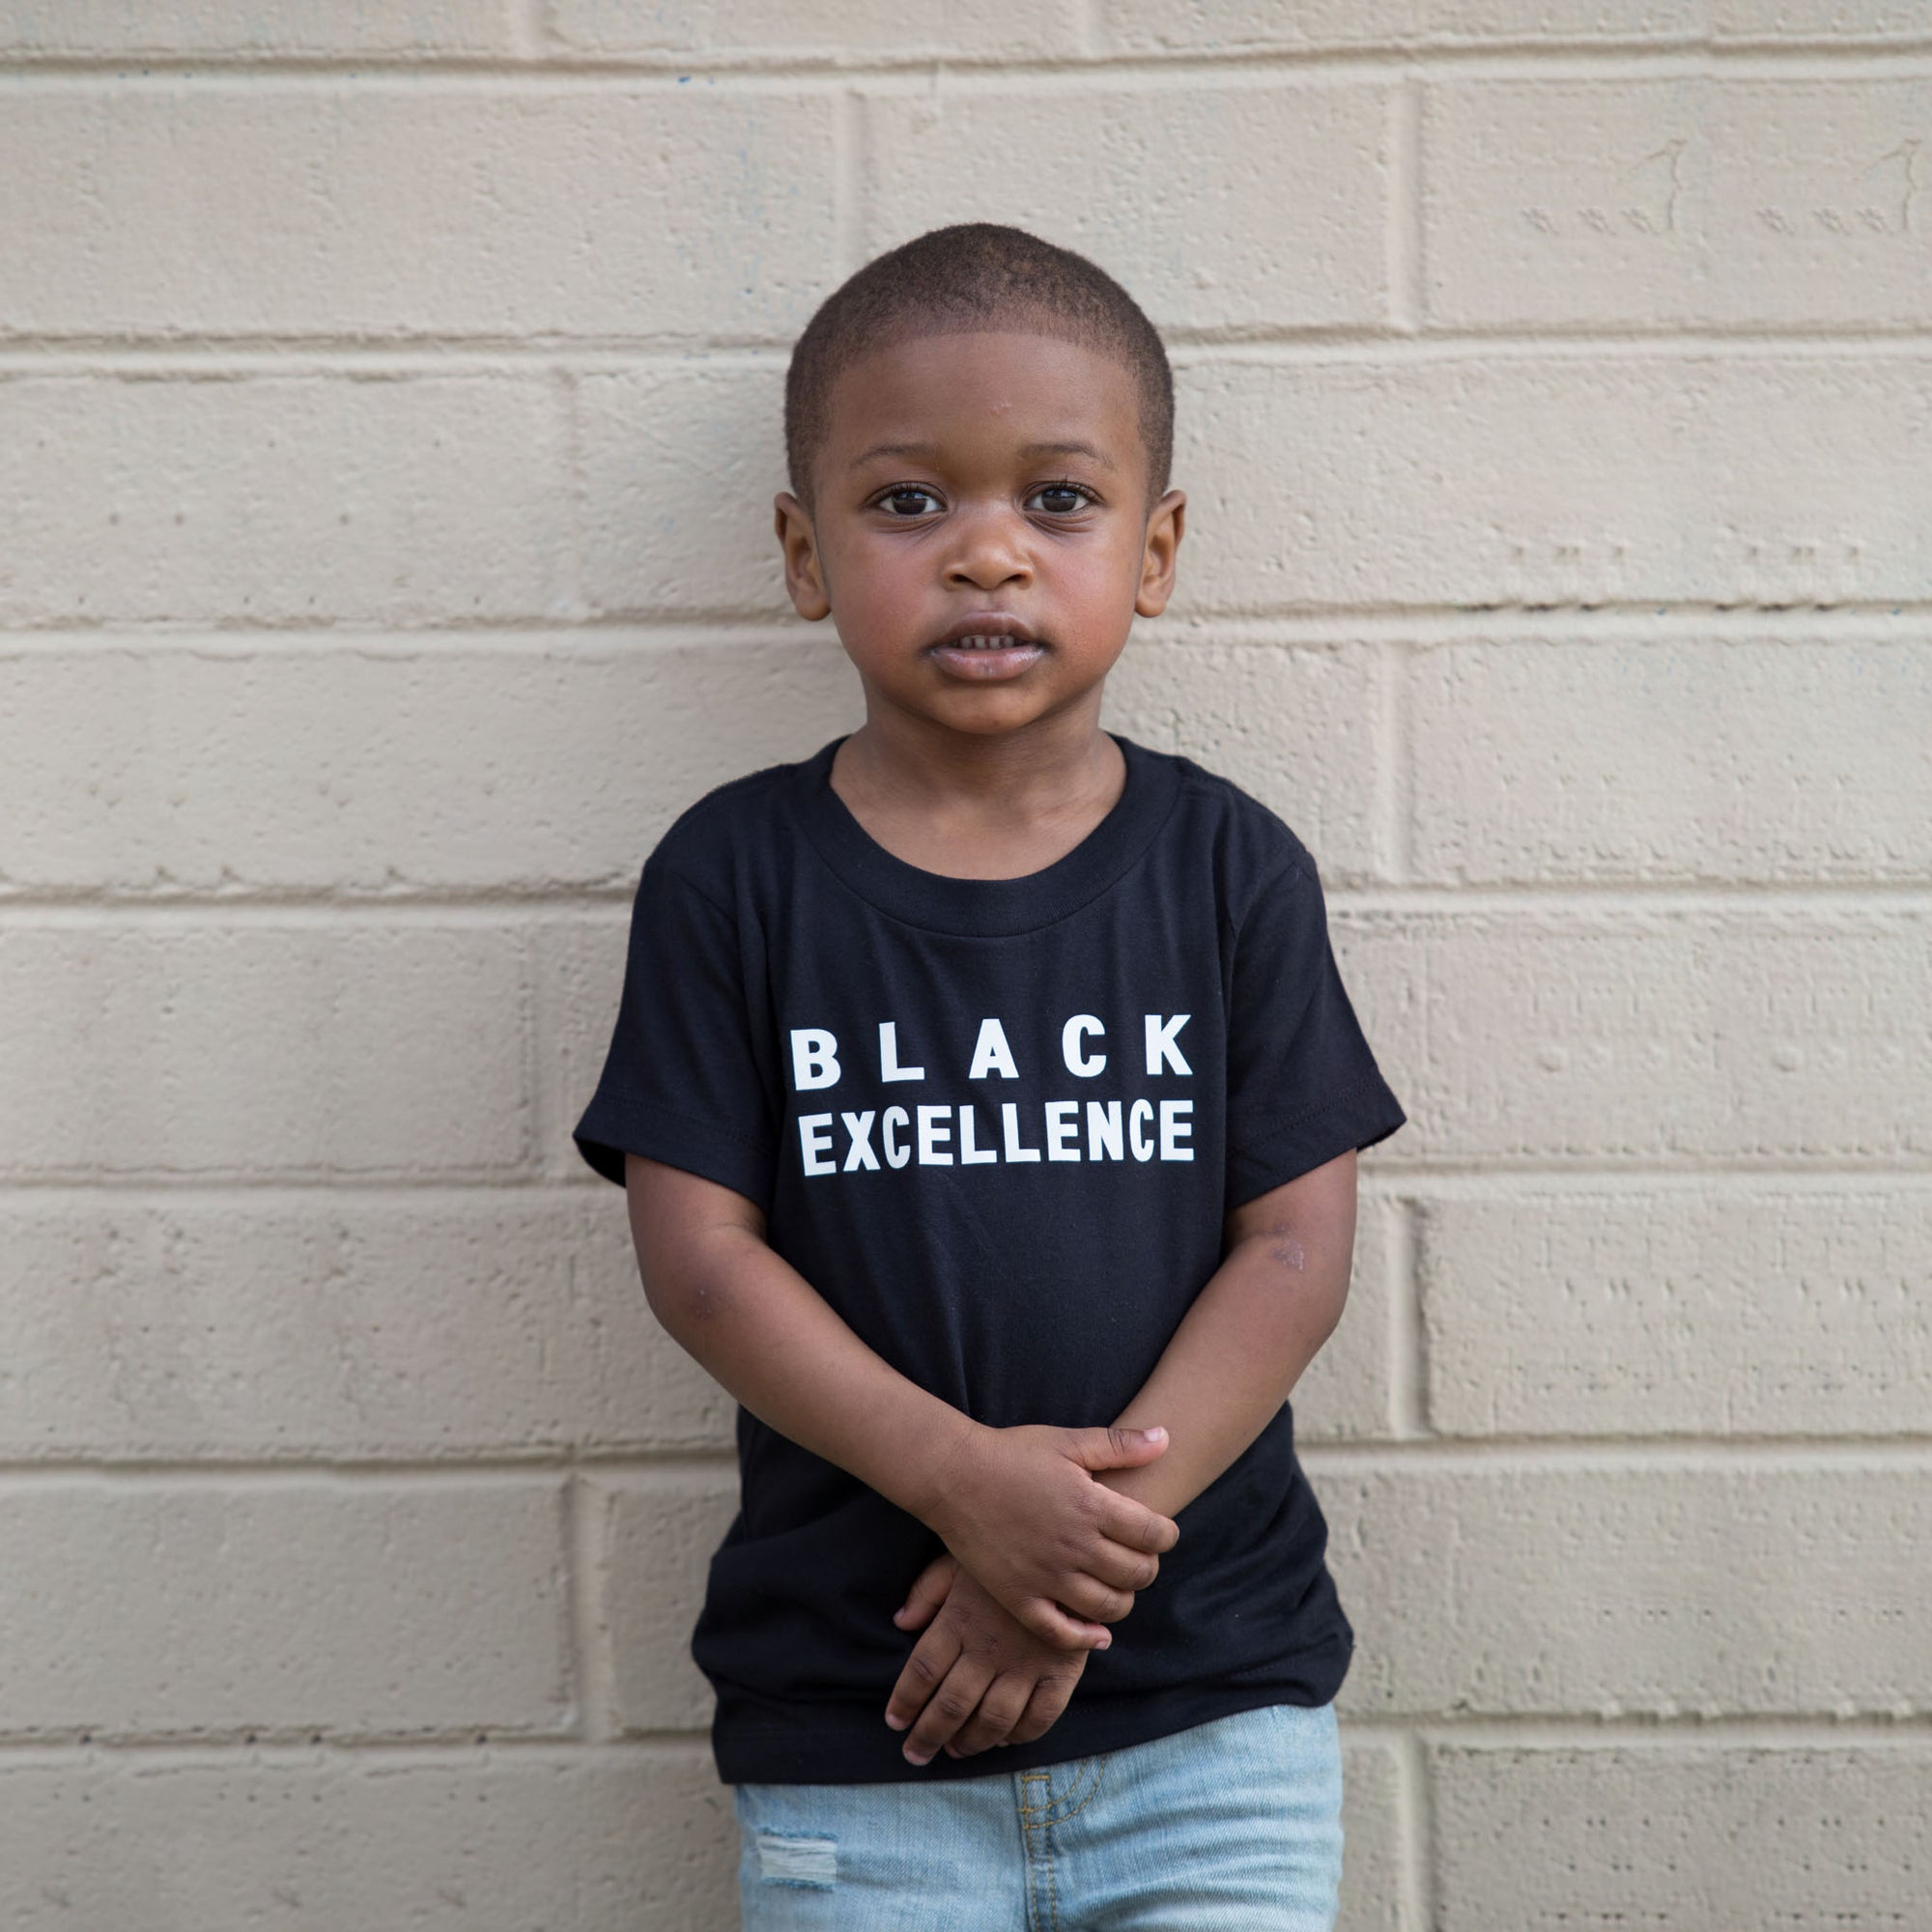 Black Excellence Unisex Kids T-Shirt